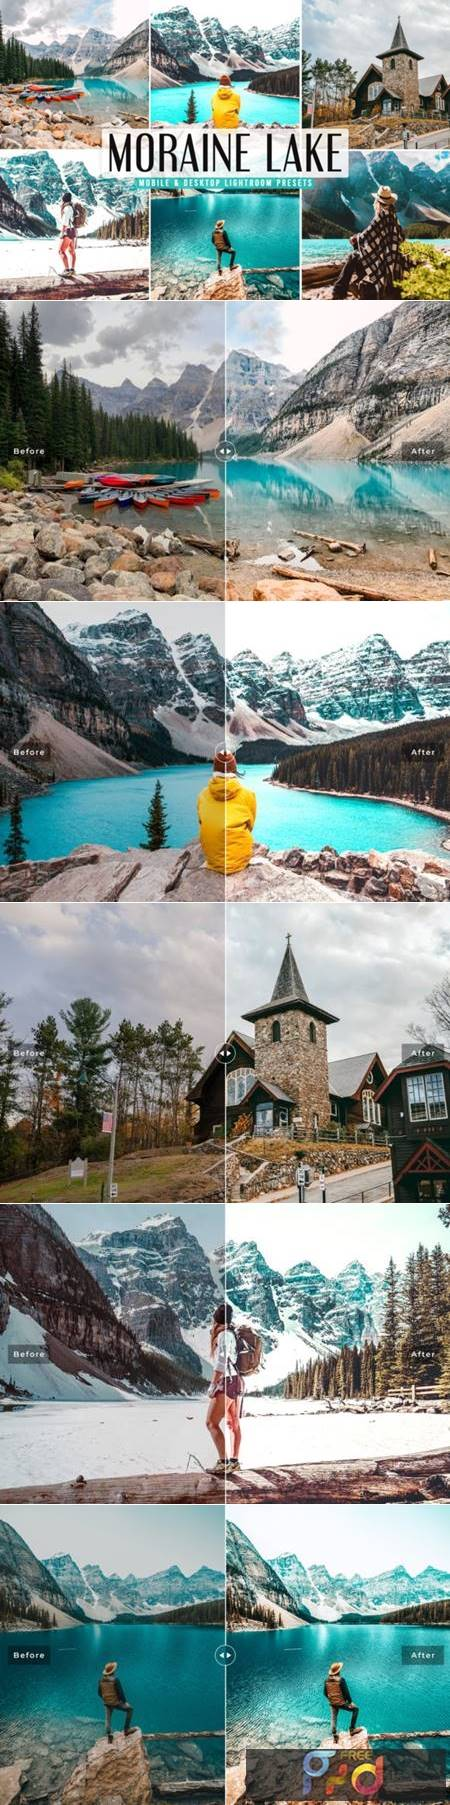 Moraine Lake Pro Lightroom Presets 6949322 1